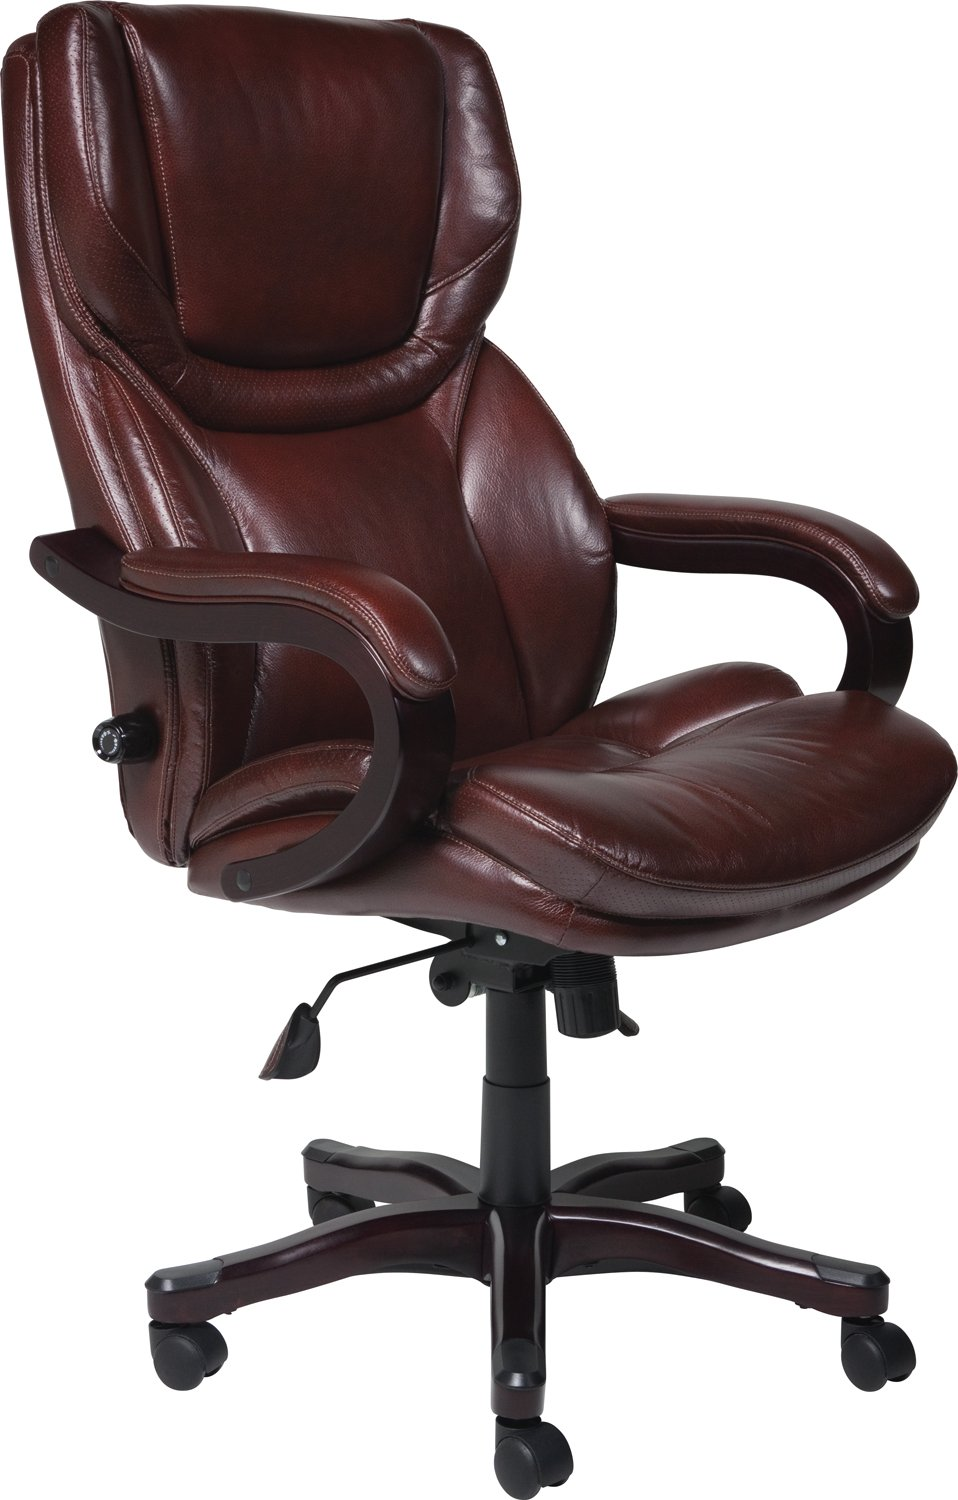 Serta Bonded Leather Big & Tall Executive Chair - Brown